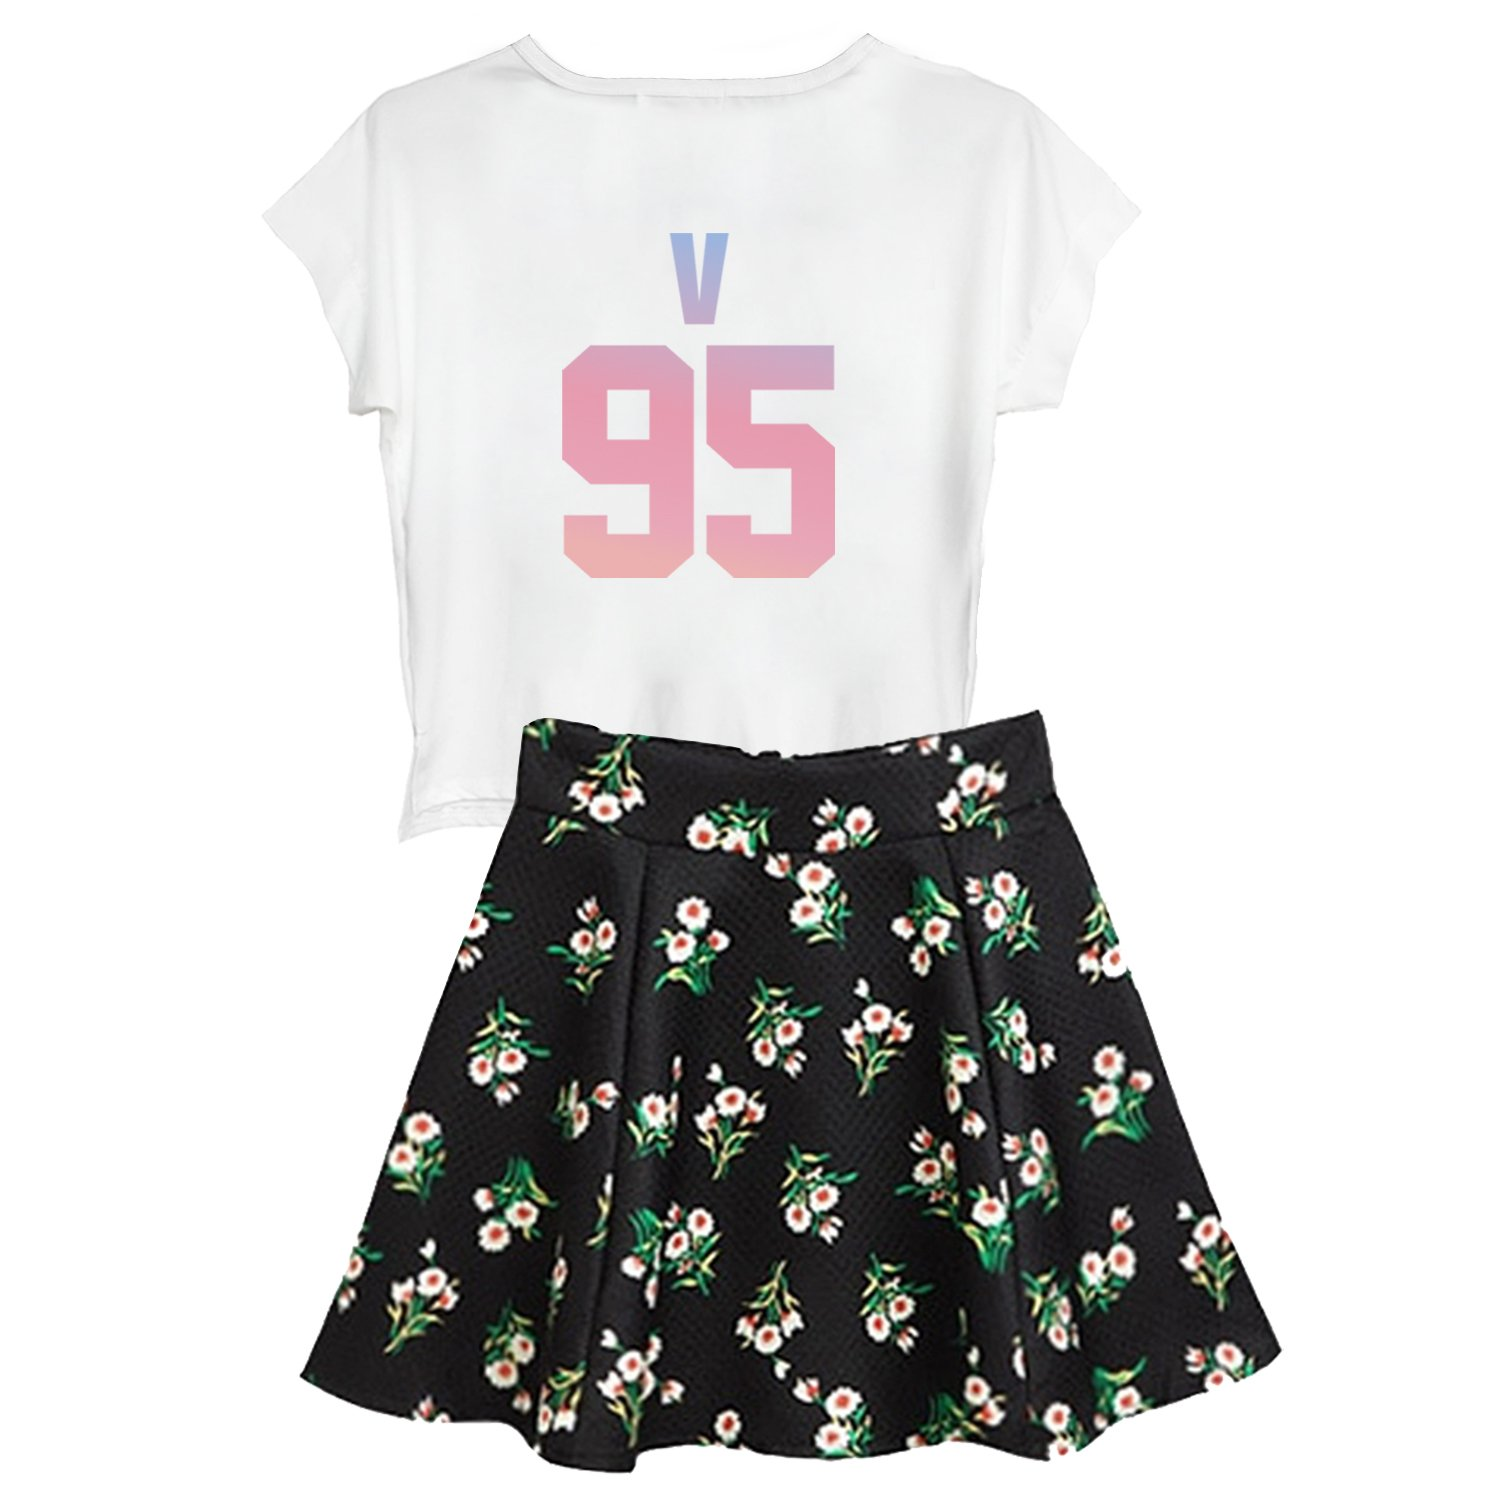 babyHealthy Kpop BTS Love Yourself Her Dress T-Shirt+Floral Skirt Two Piece Suit by babyHealthy (Image #2)